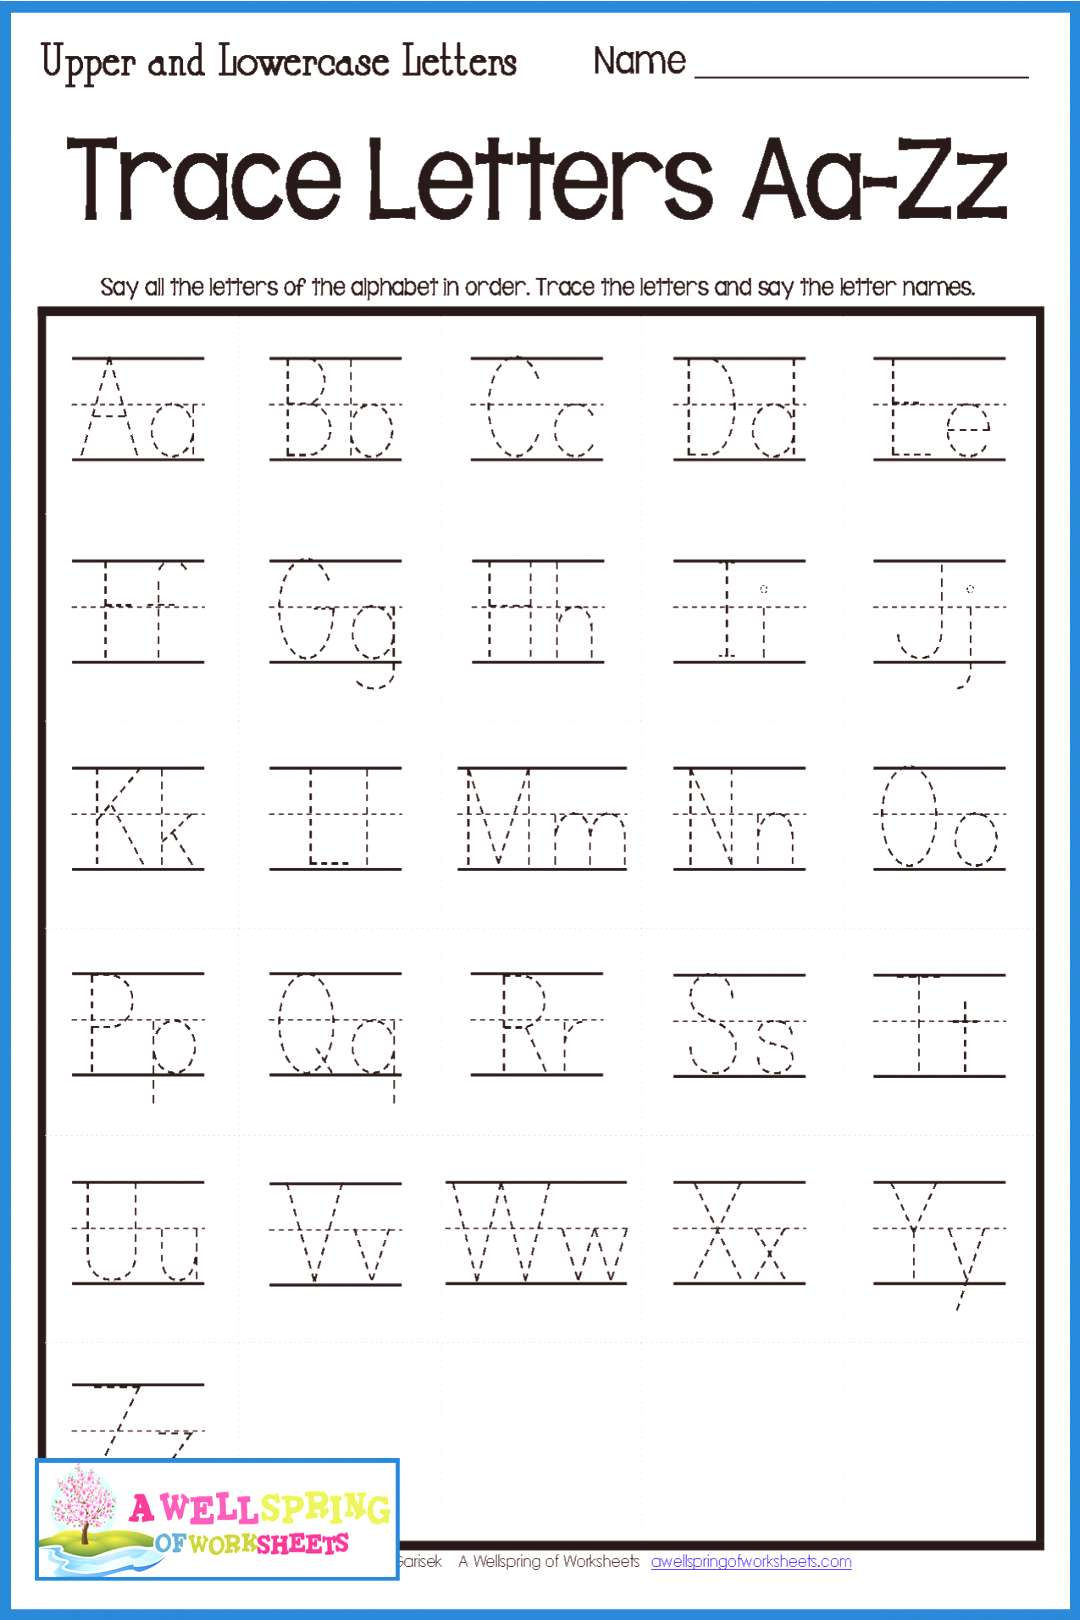 Alphabet Letter Tracing on Primary Writing Lines Practice tracing uppercase and lowercase letters w